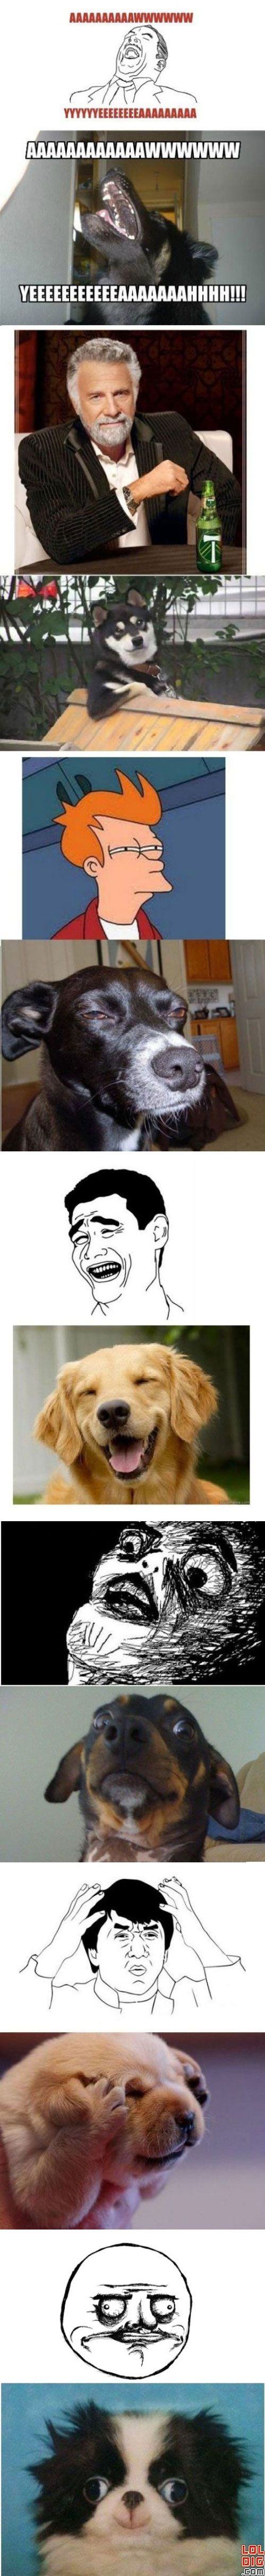 Funny Dogs that look like famous rage comic meme faces